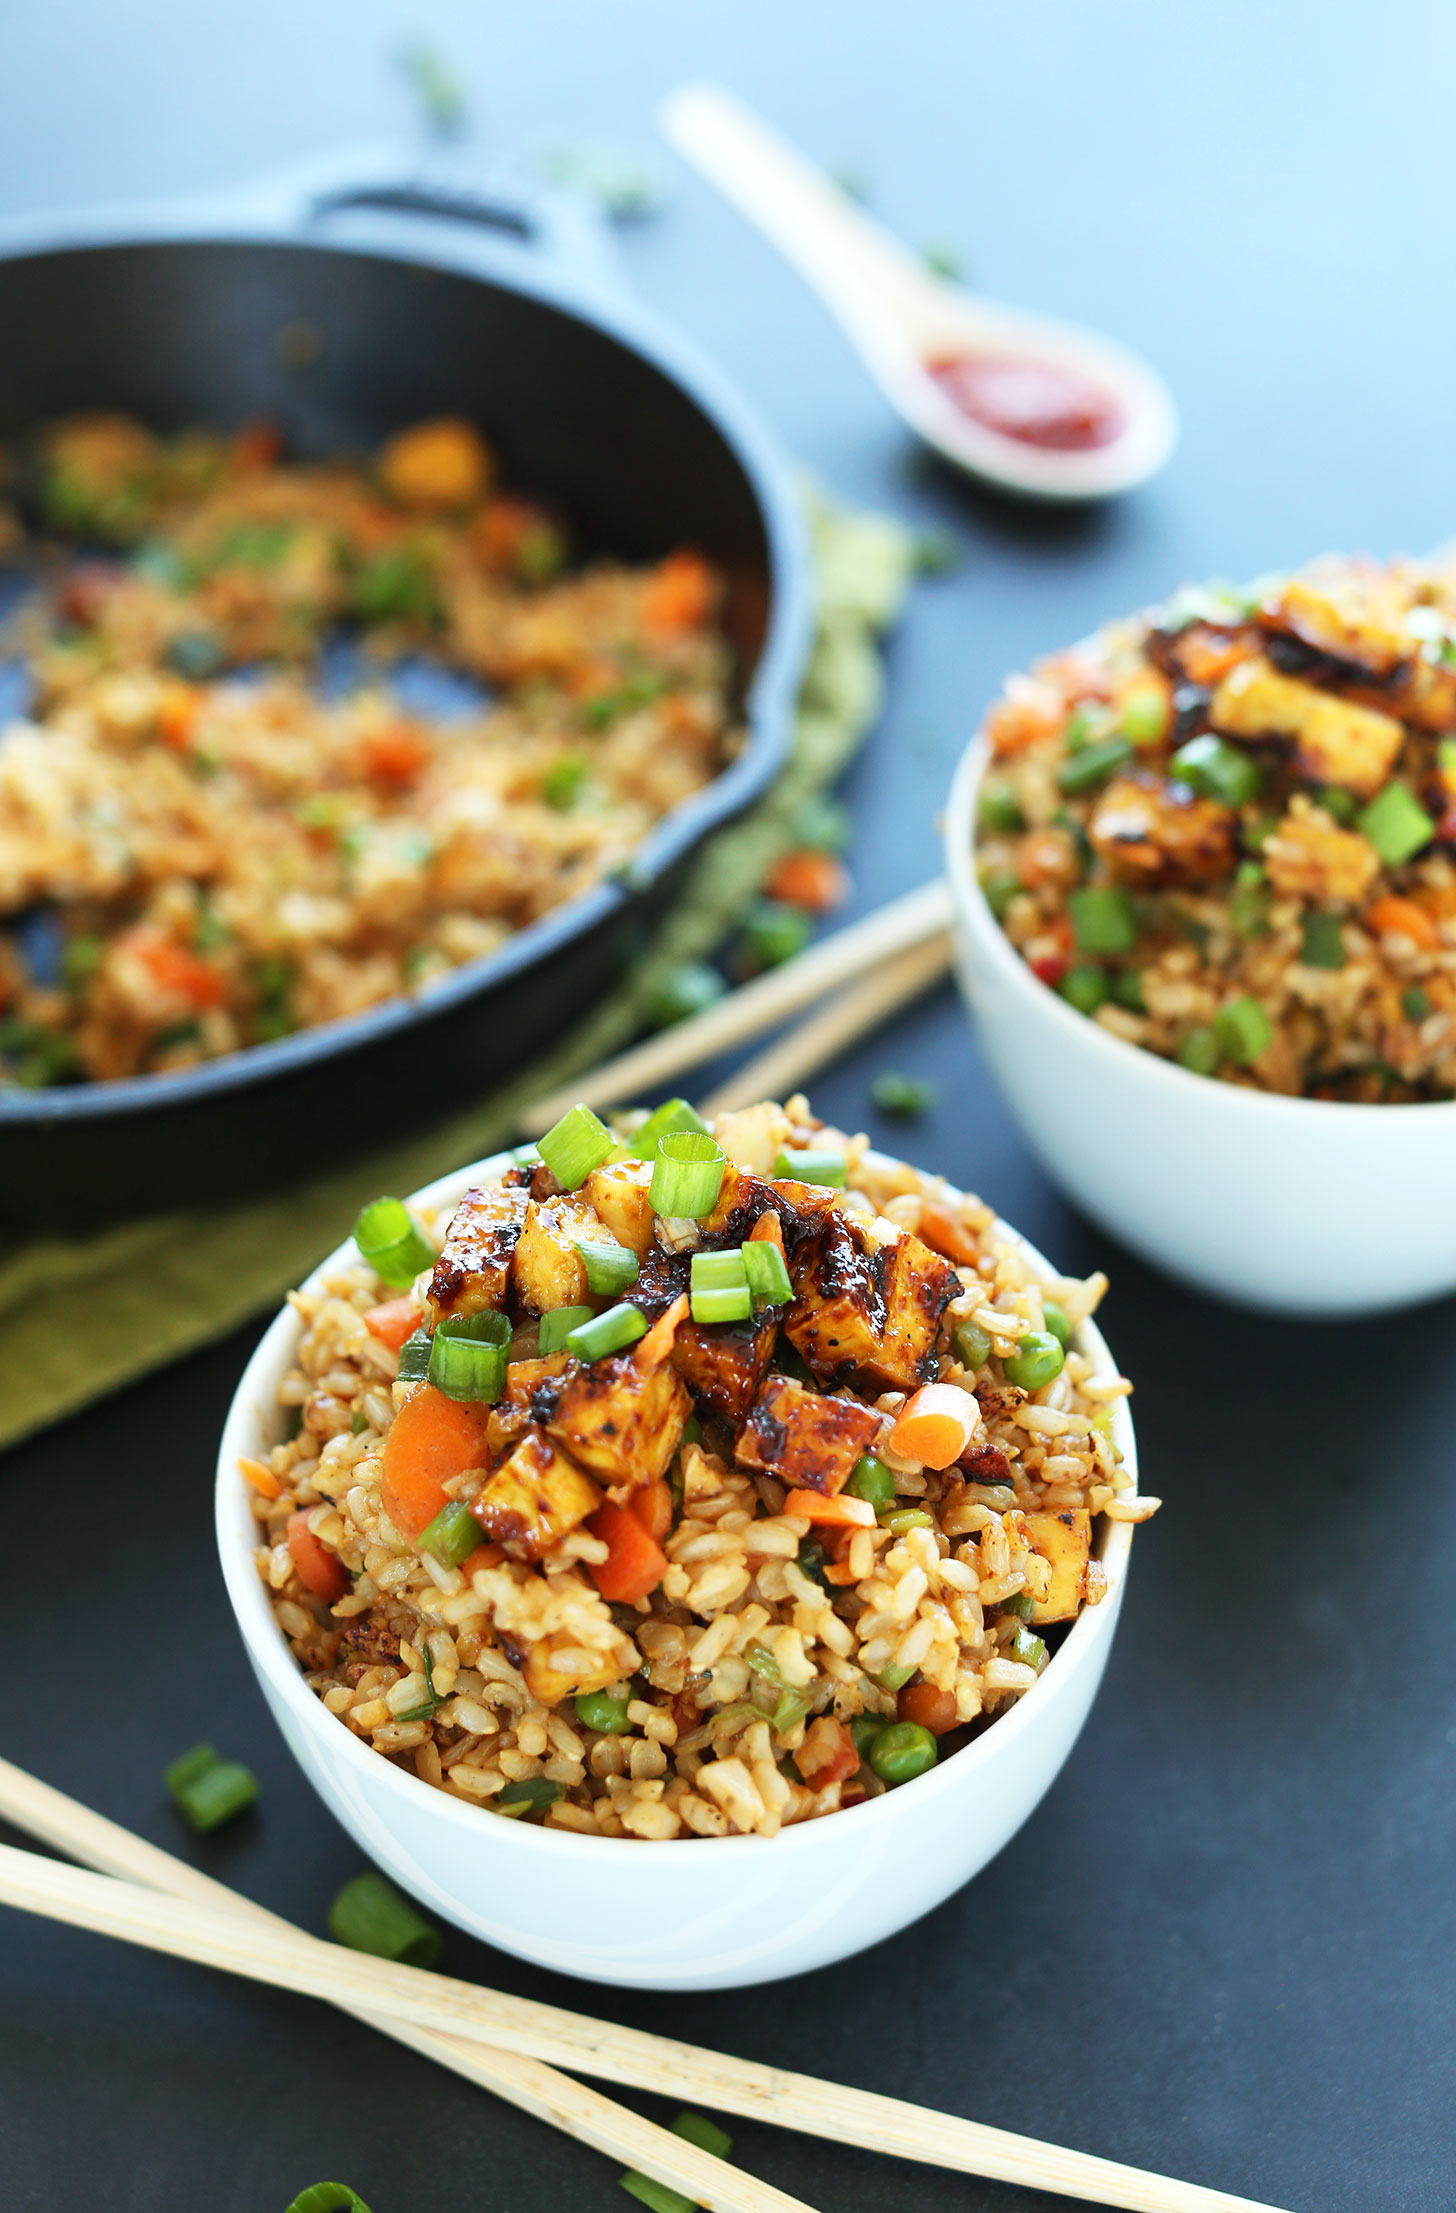 86 Vegetarian Dinner Ideas Even Meat-Eaters Will Love. Plant-based products for the win.